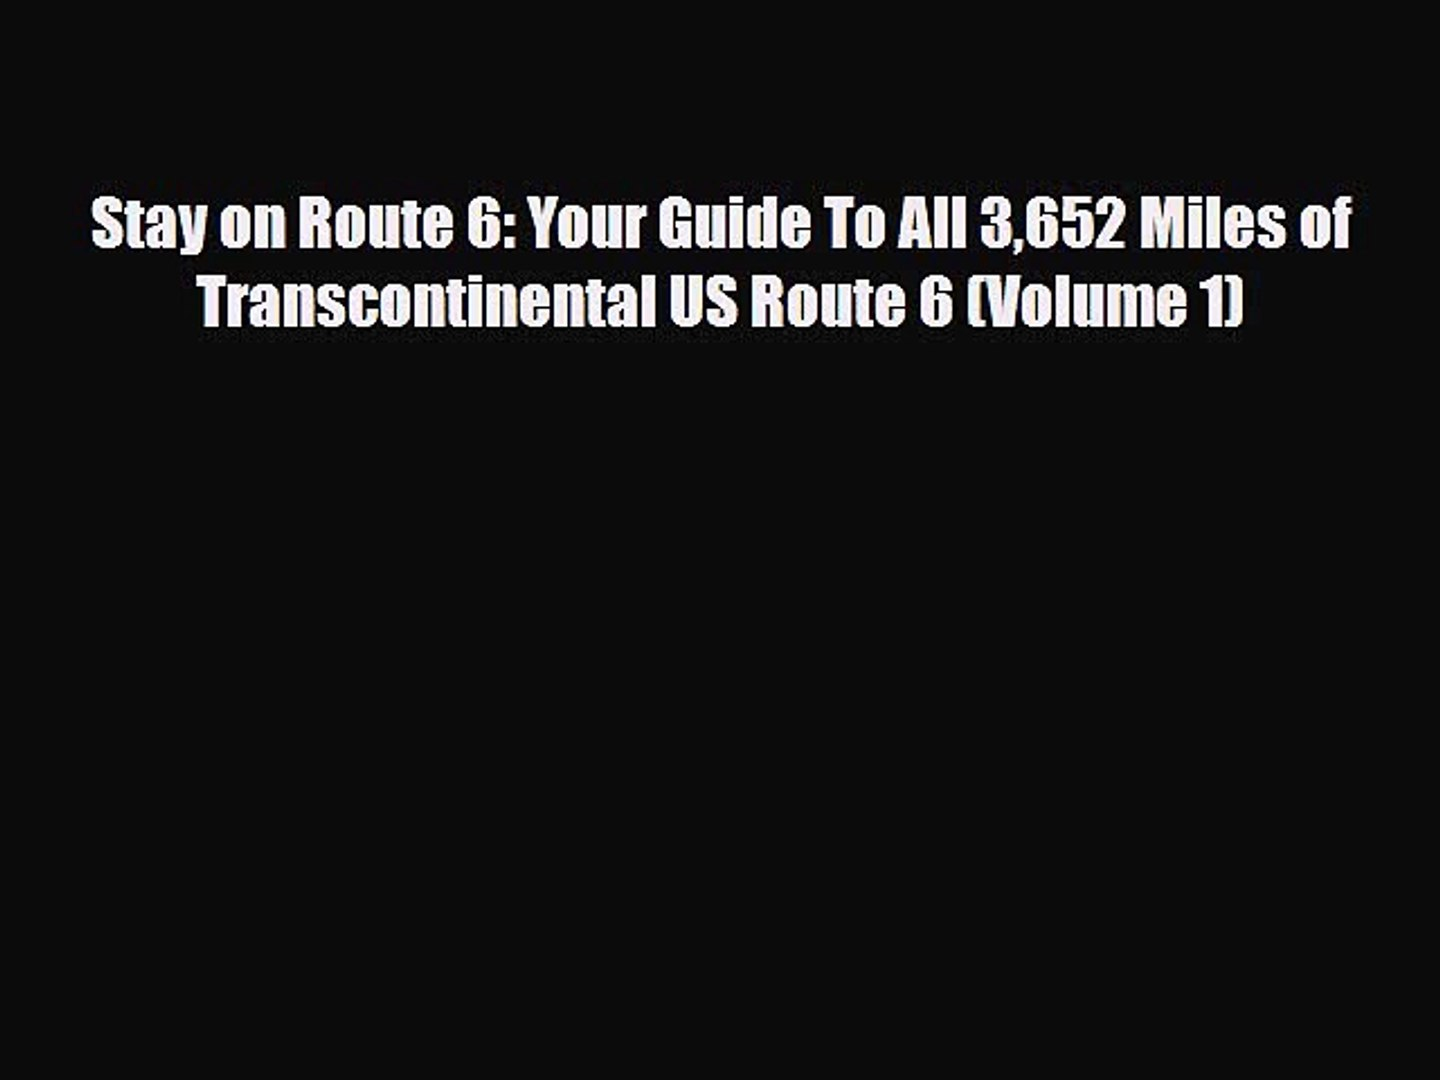 Stay on Route 6: Your Guide To All 3,652 Miles of Transcontinental US Route 6